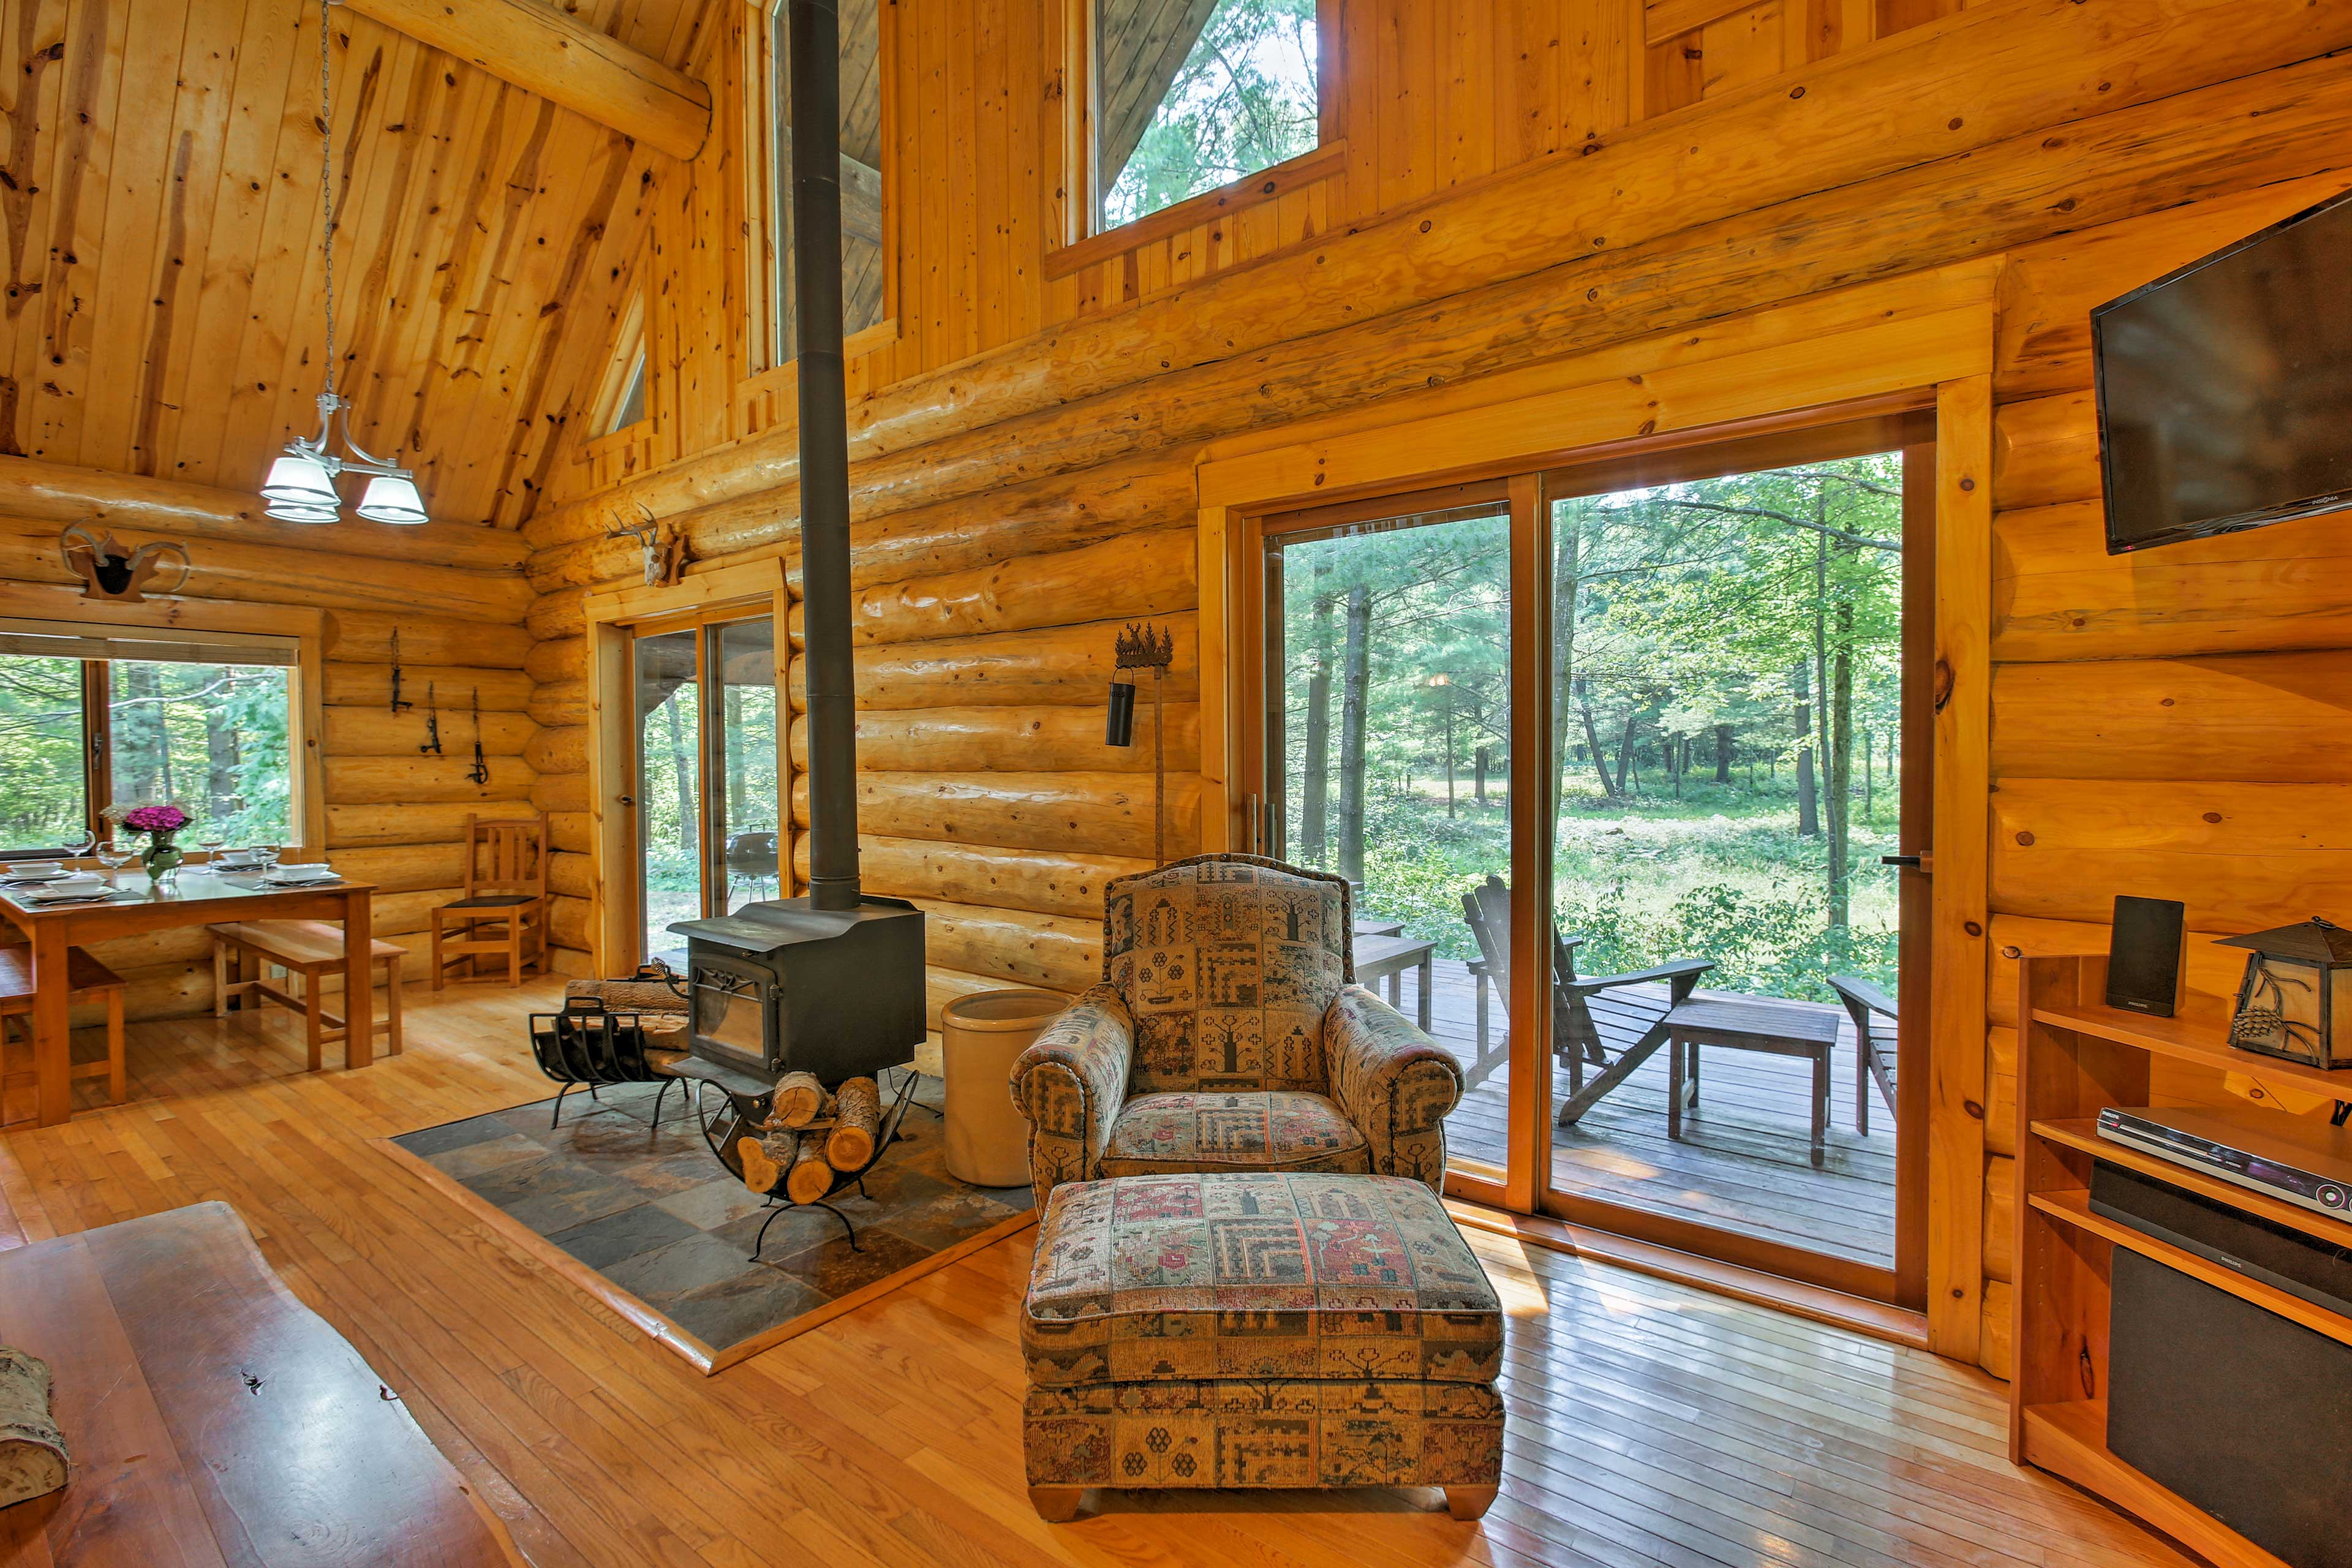 After a day of exploring the outdoors, lounge by the fireplace & flat-screen TV.